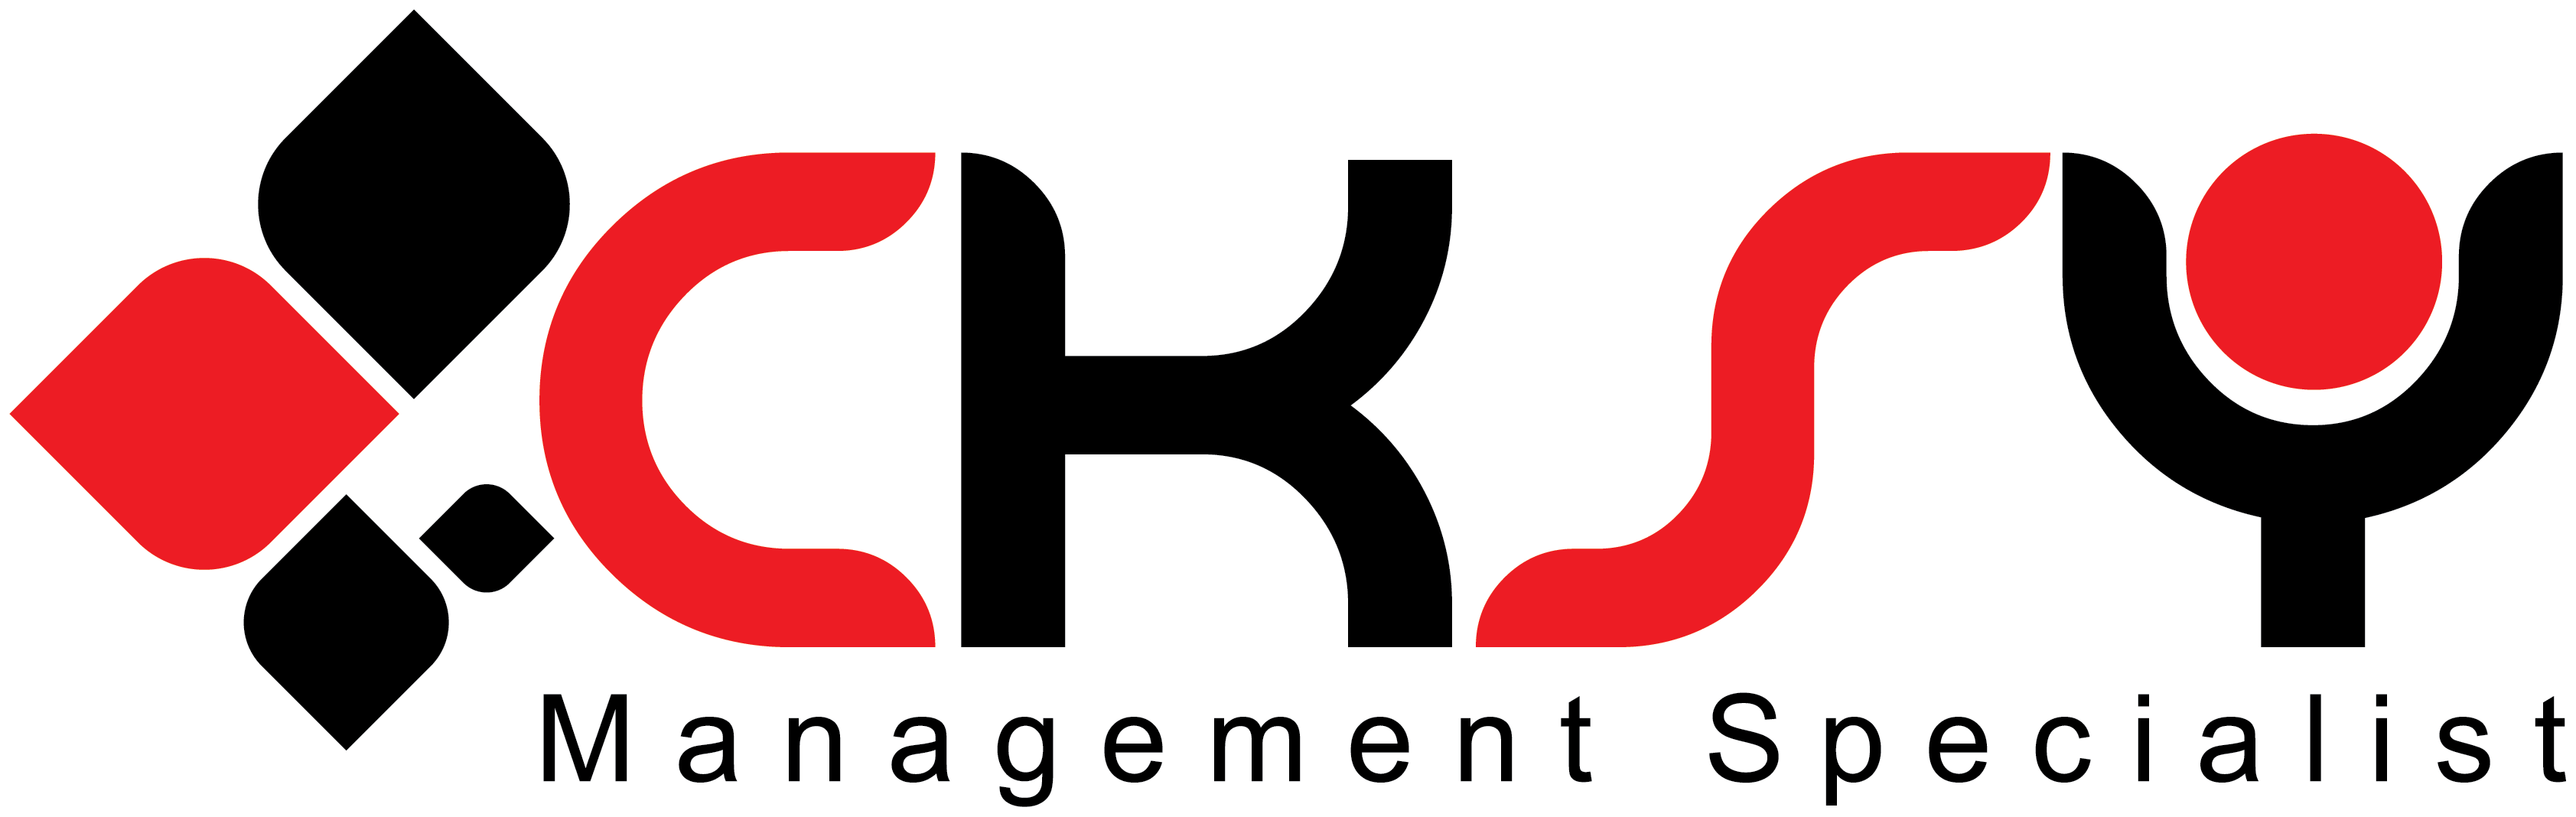 CKSY Management Specialist